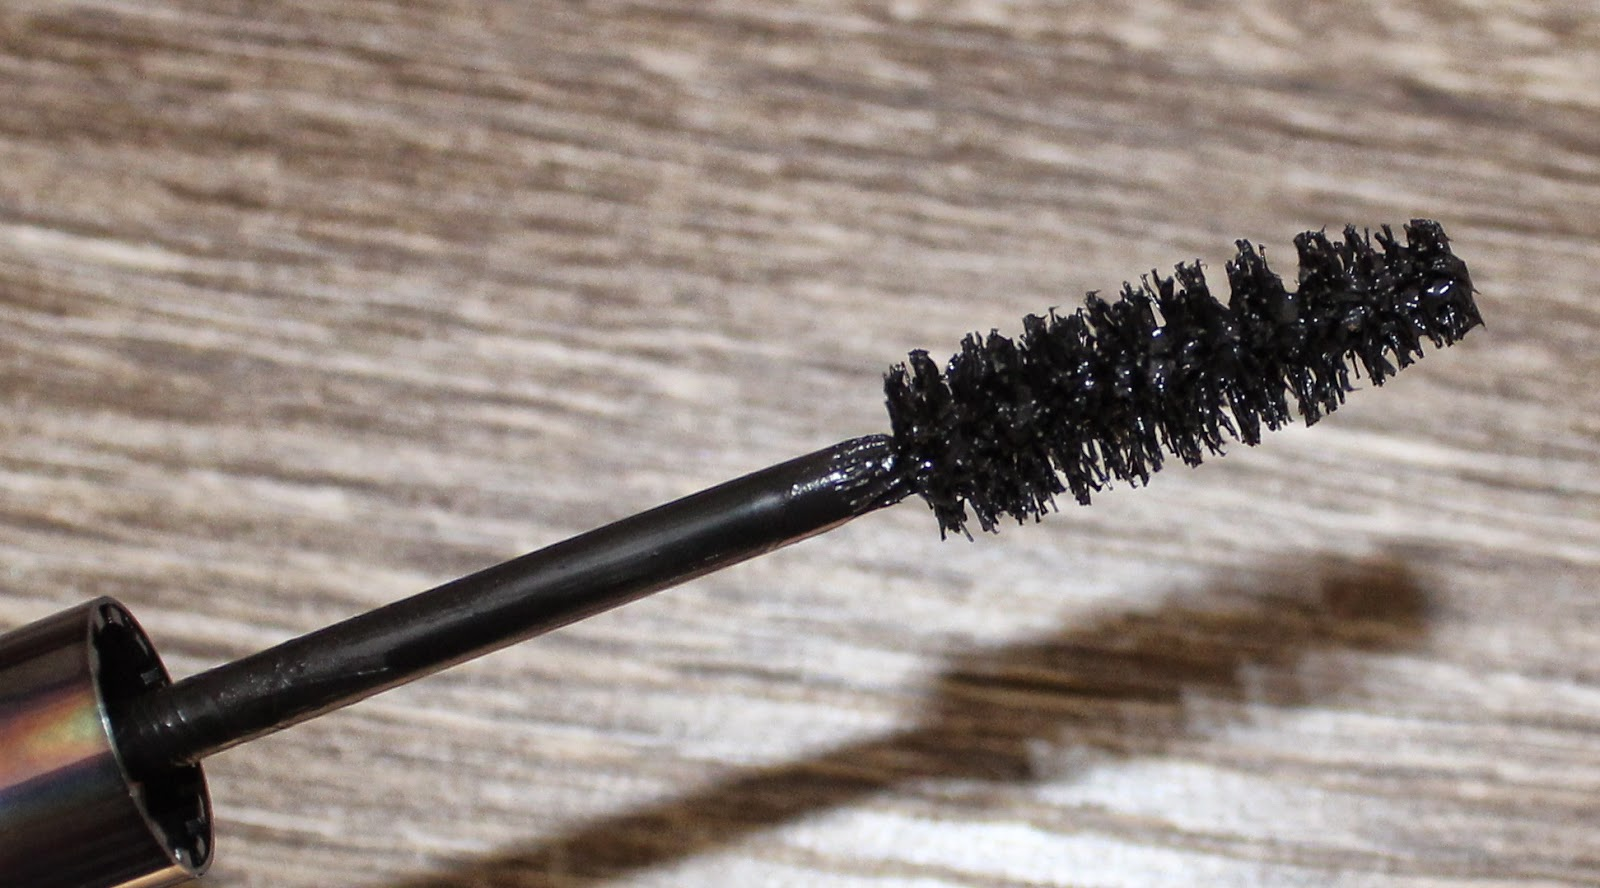 Urban Decay Perversion Mascara